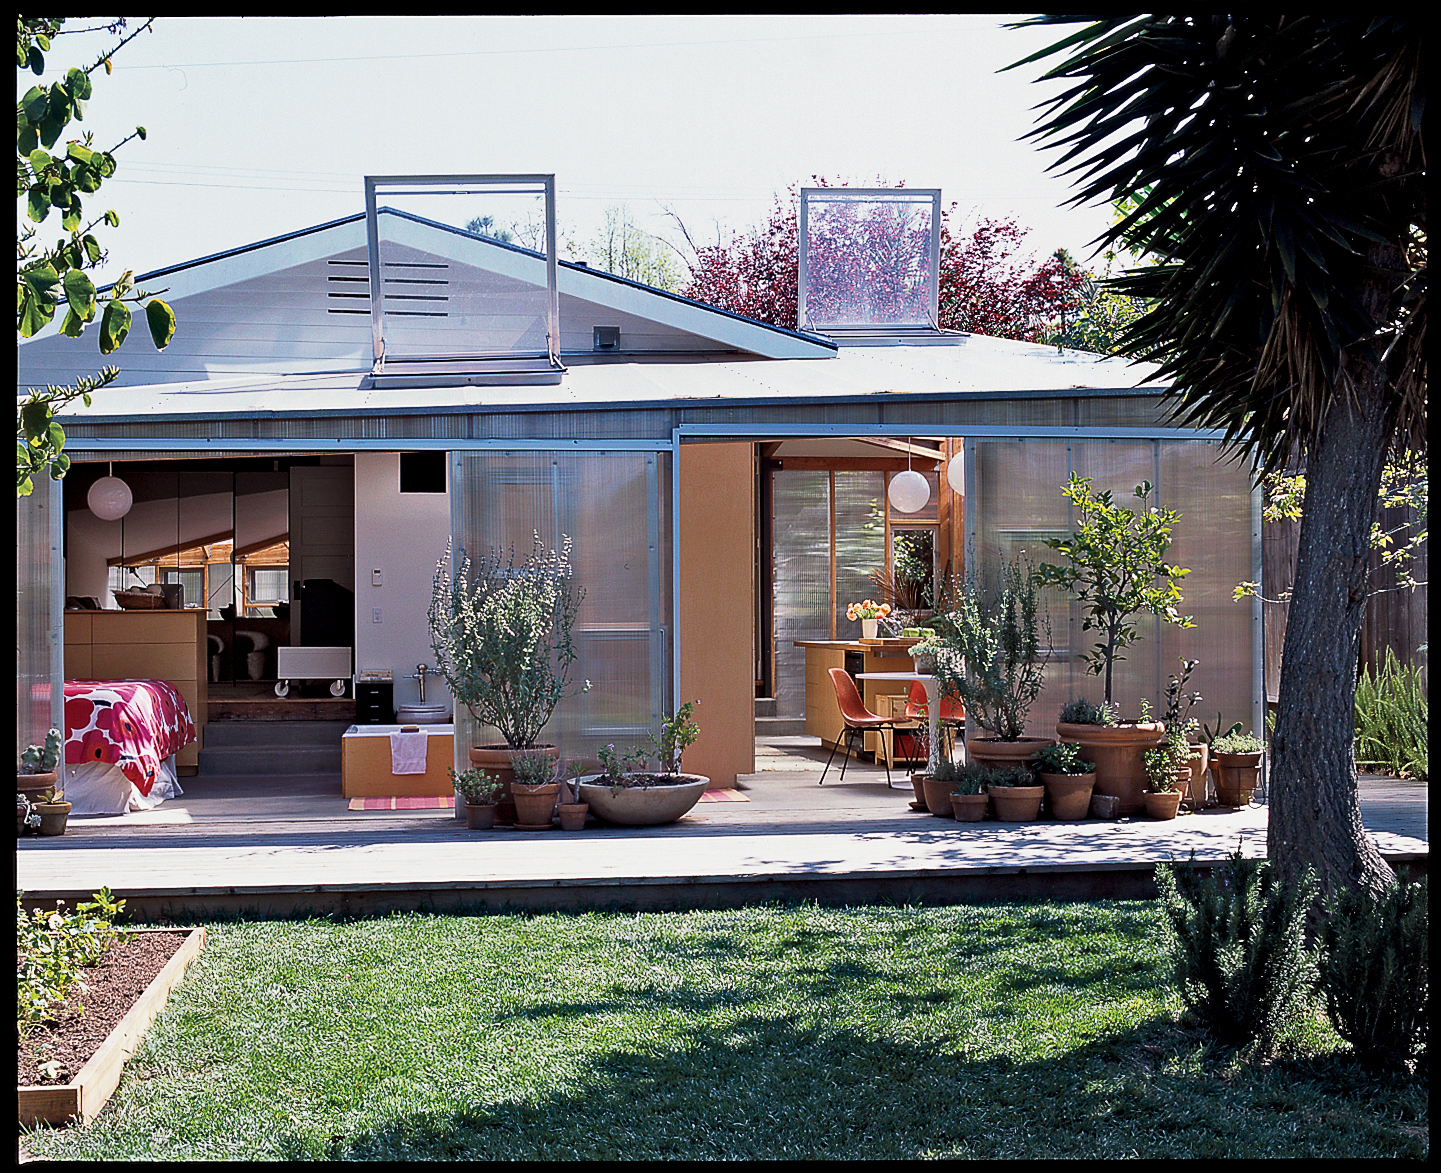 Sunny bungalow Great lessons in style and